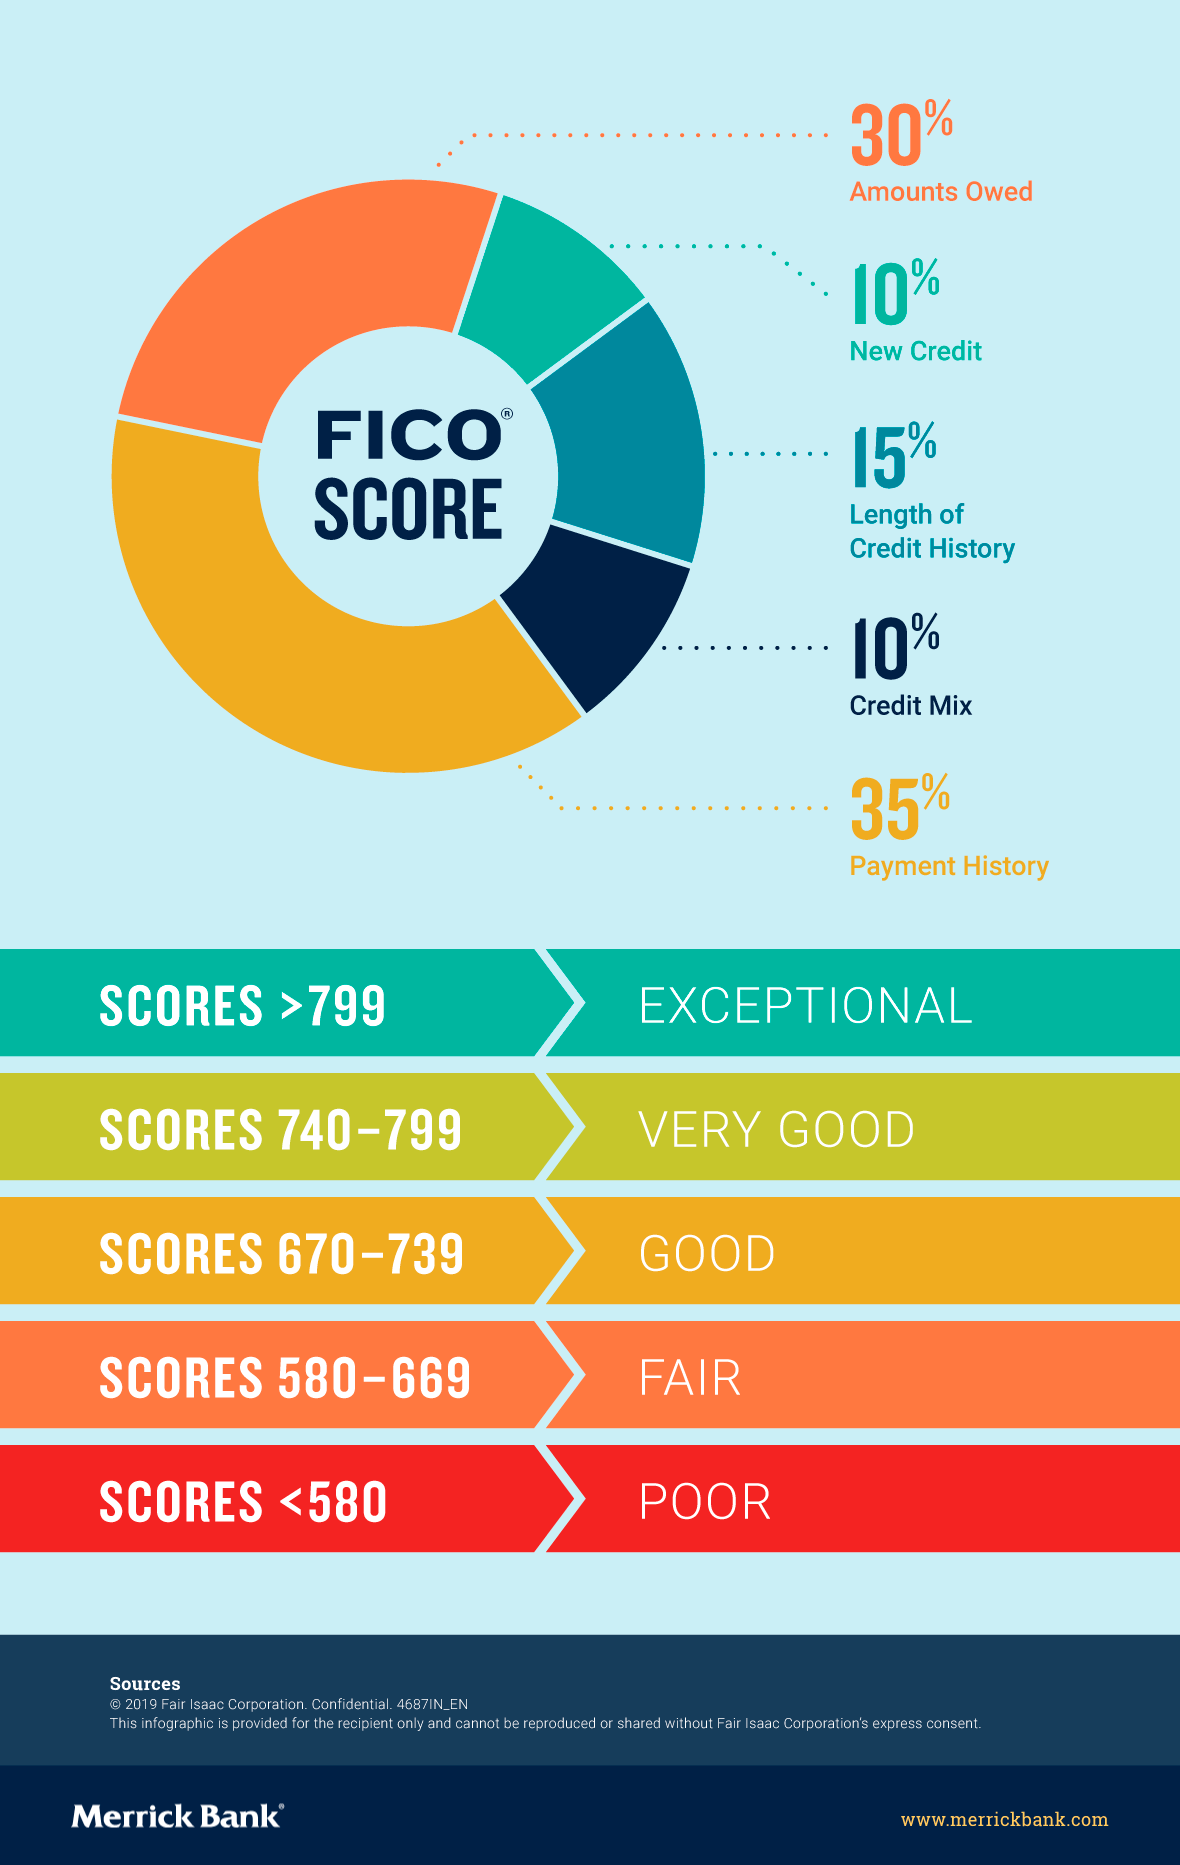 Factors that affect your FICO score